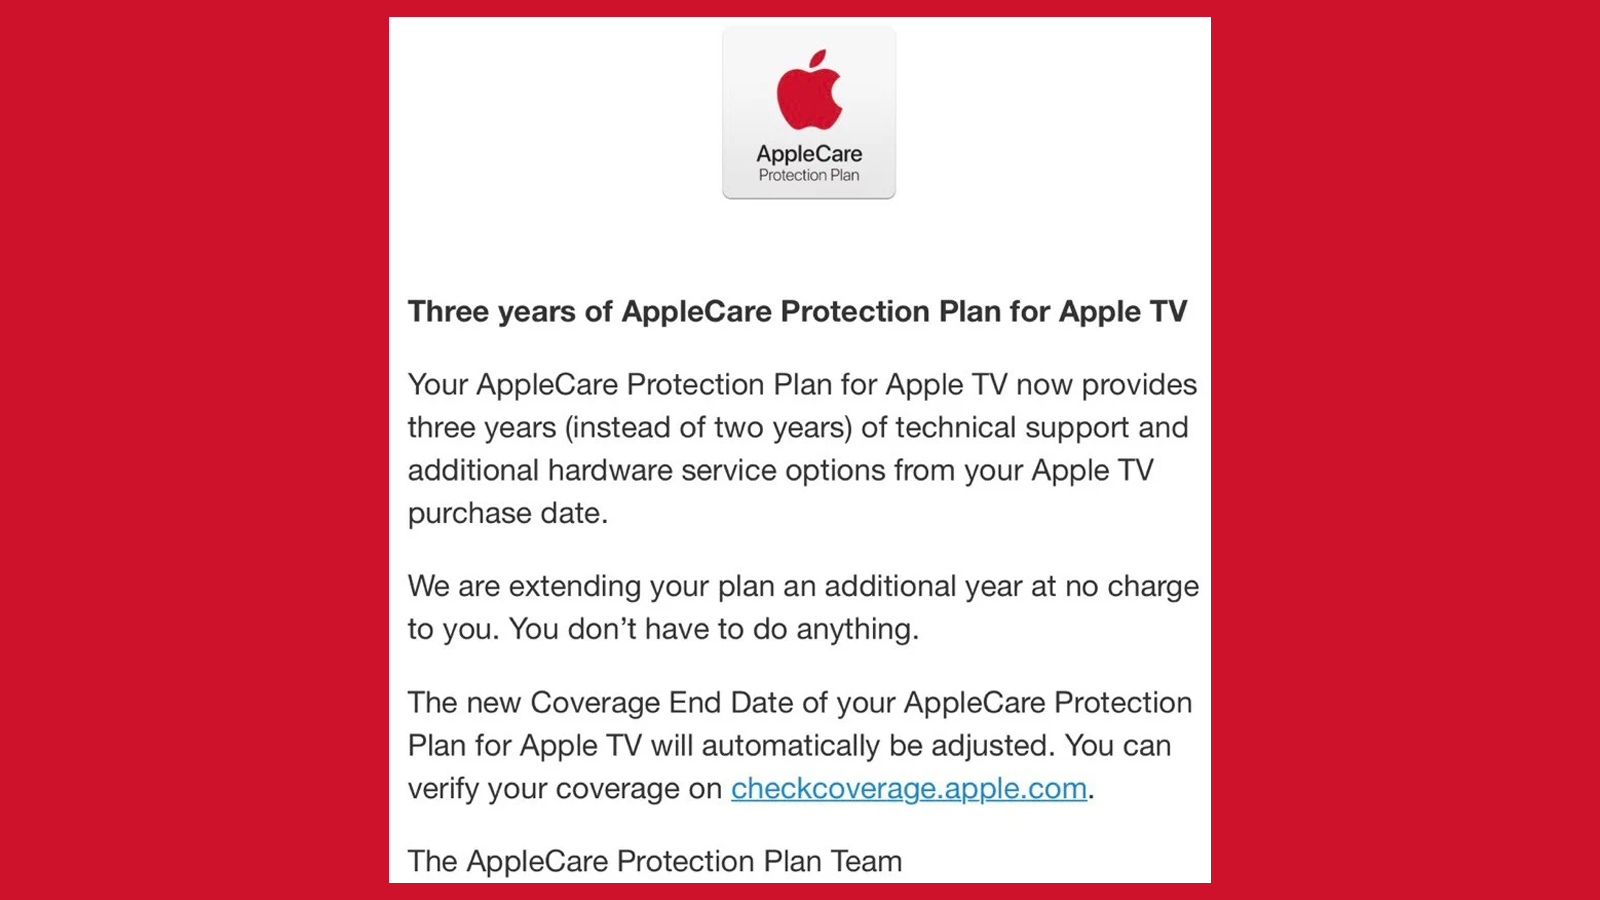 Apple's email about apple tv applecare coverage extension